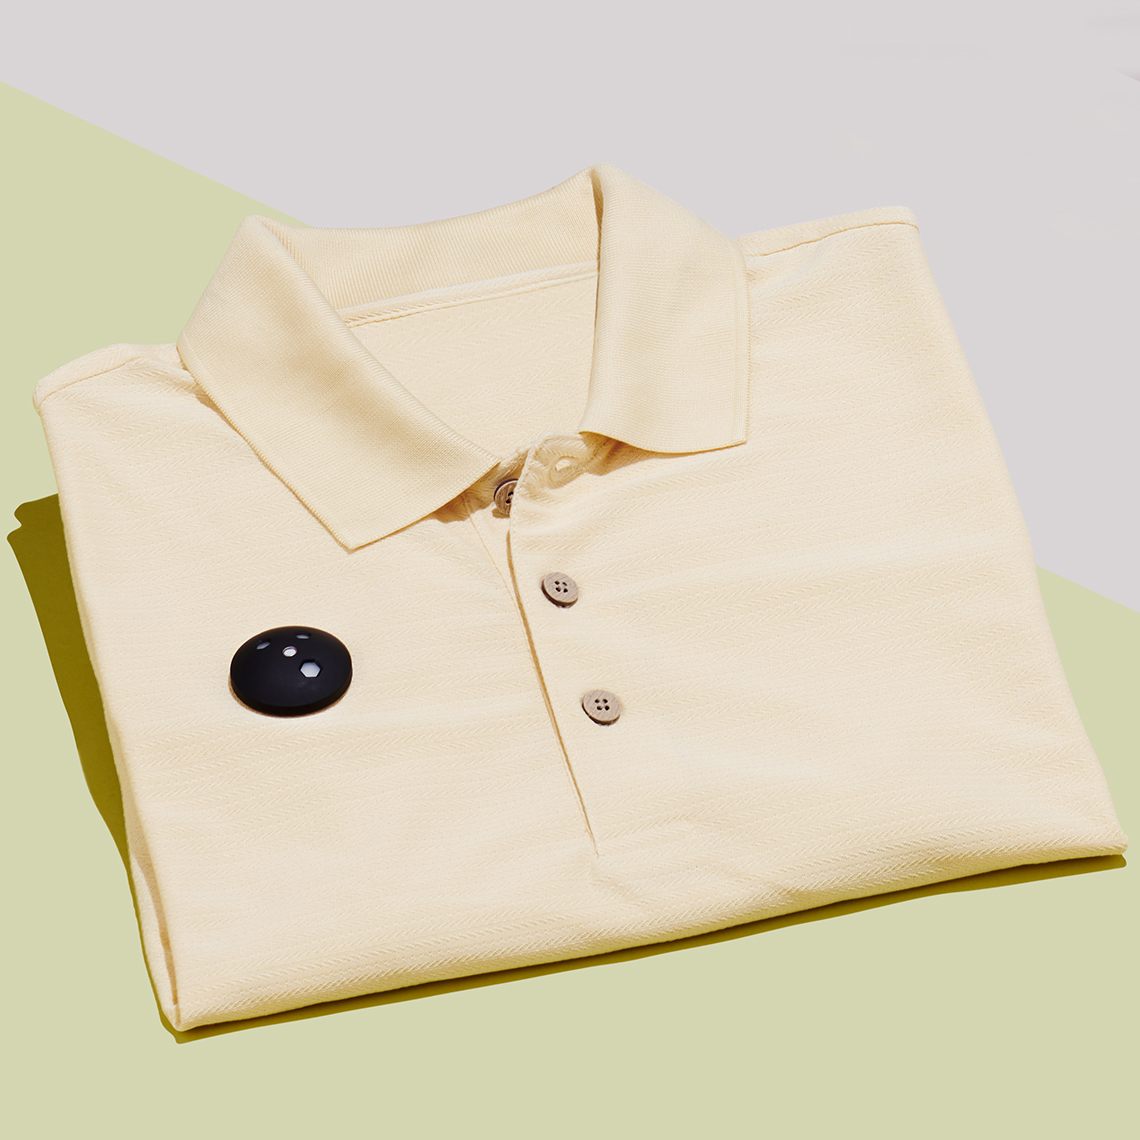 A shirt with a UV monitor on the front